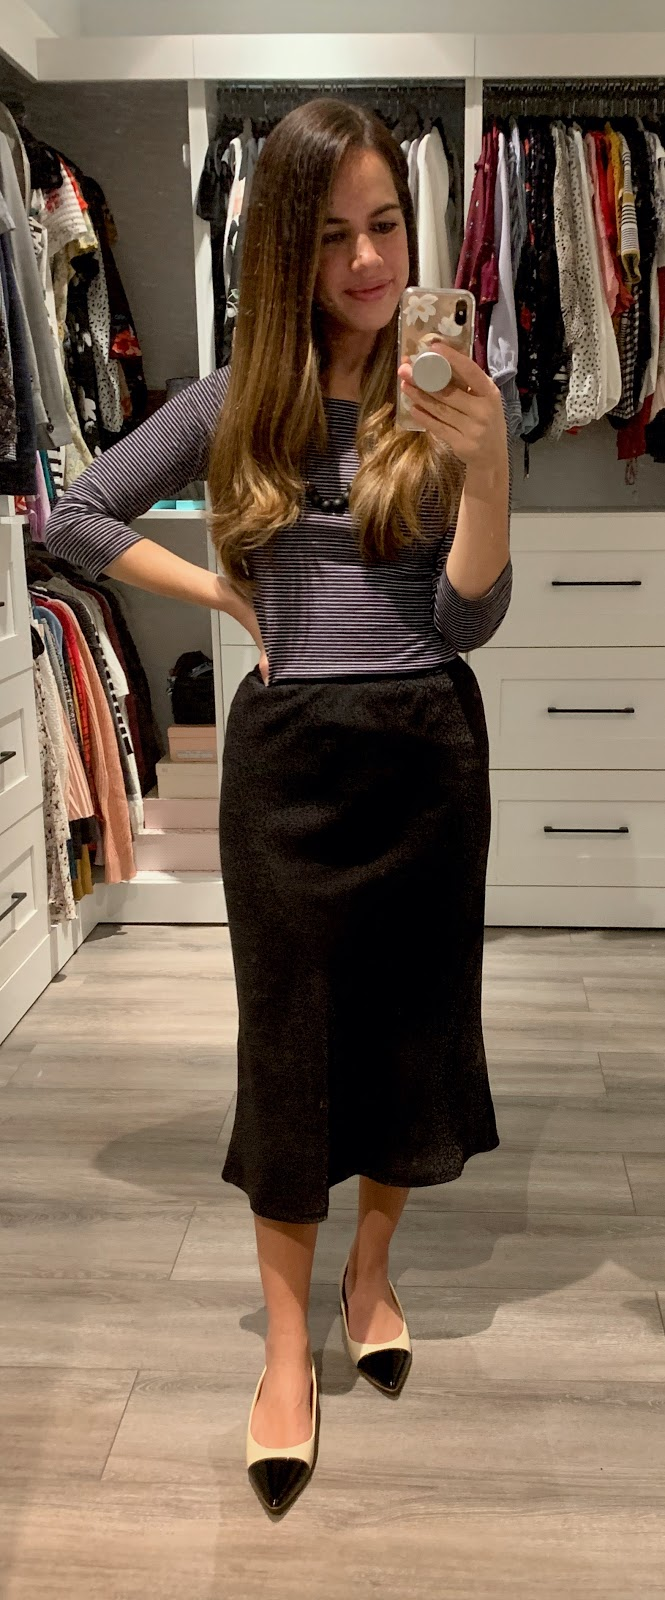 Jules in Flats -  Striped Boat Neck Tee with Black Midi Skirt (Business Casual Workwear on a Budget)